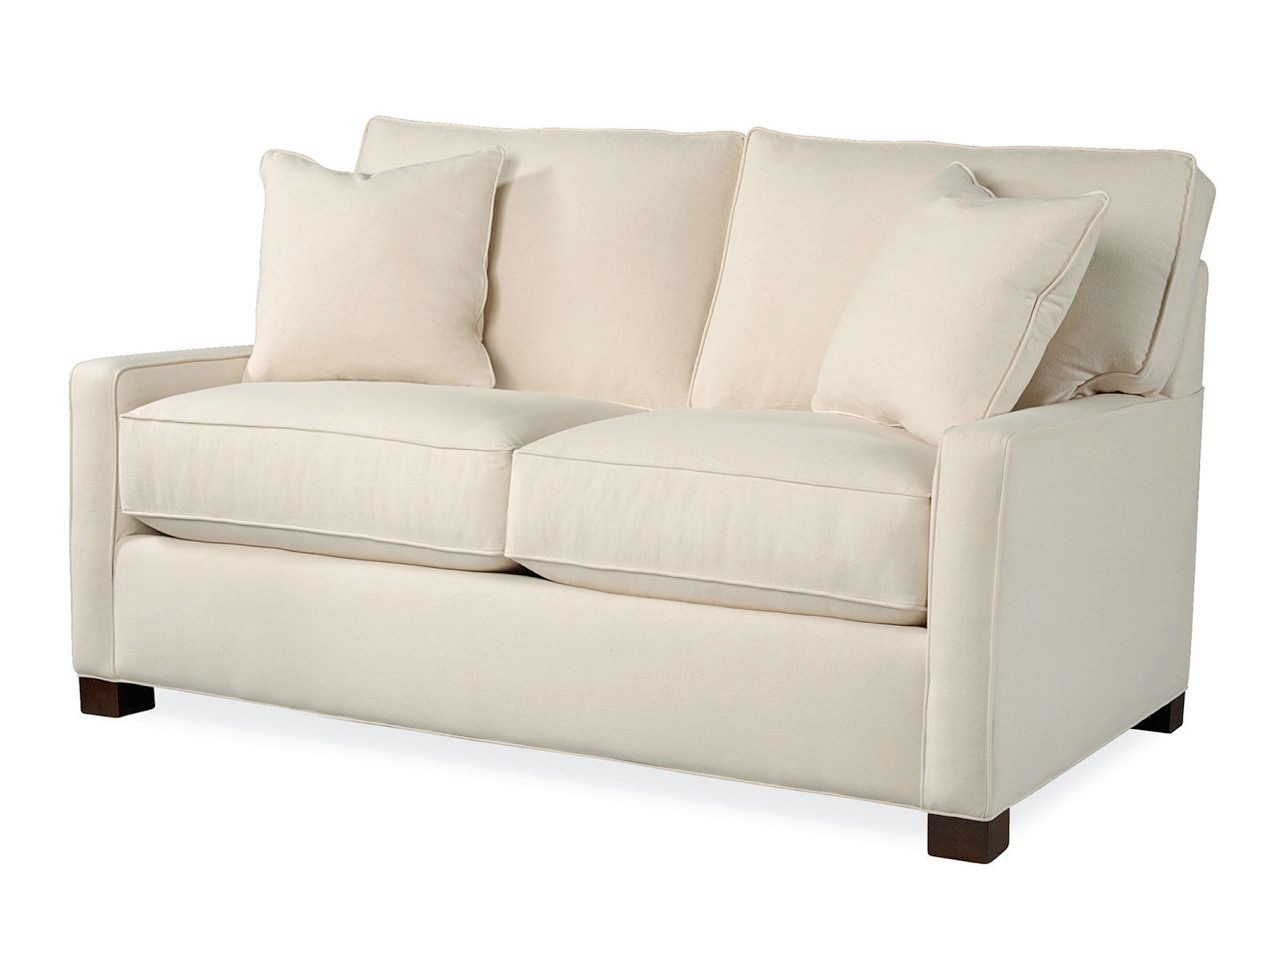 Kelsey Track Arm Apartment Sofa | Apartment Sofas, Loveseat ...